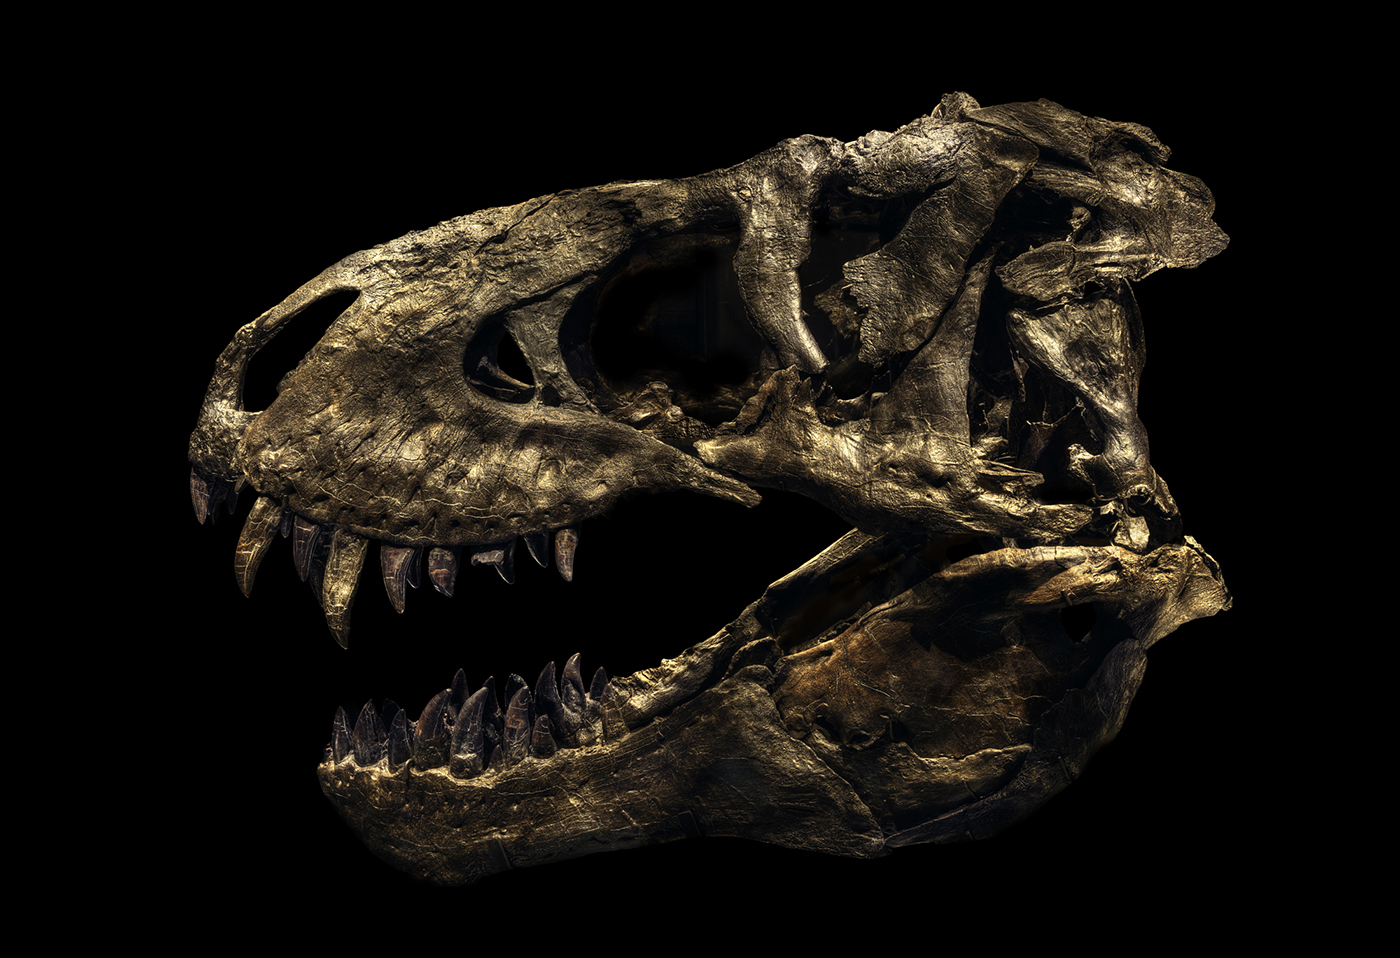 Tyrannosaurus Rex Tristan © Christian Voigt – Courtesy Wanrooij Gallery